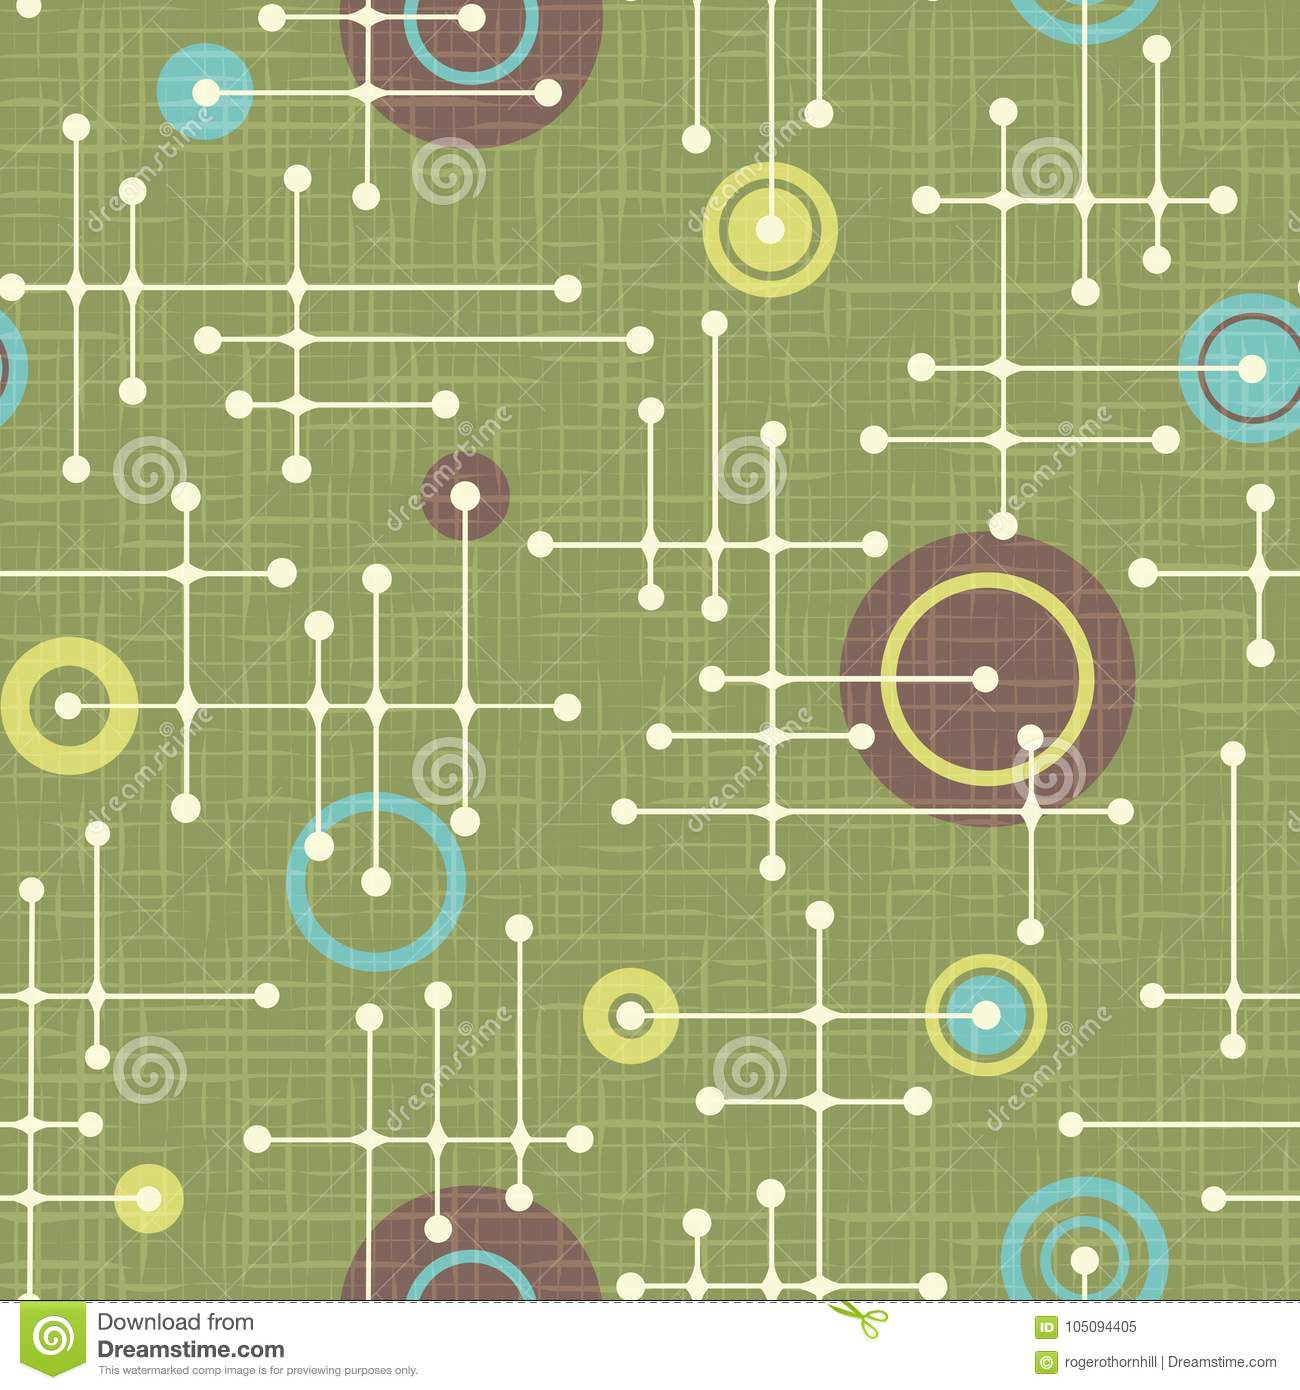 Seamless 1950s retro pattern of lines and circles